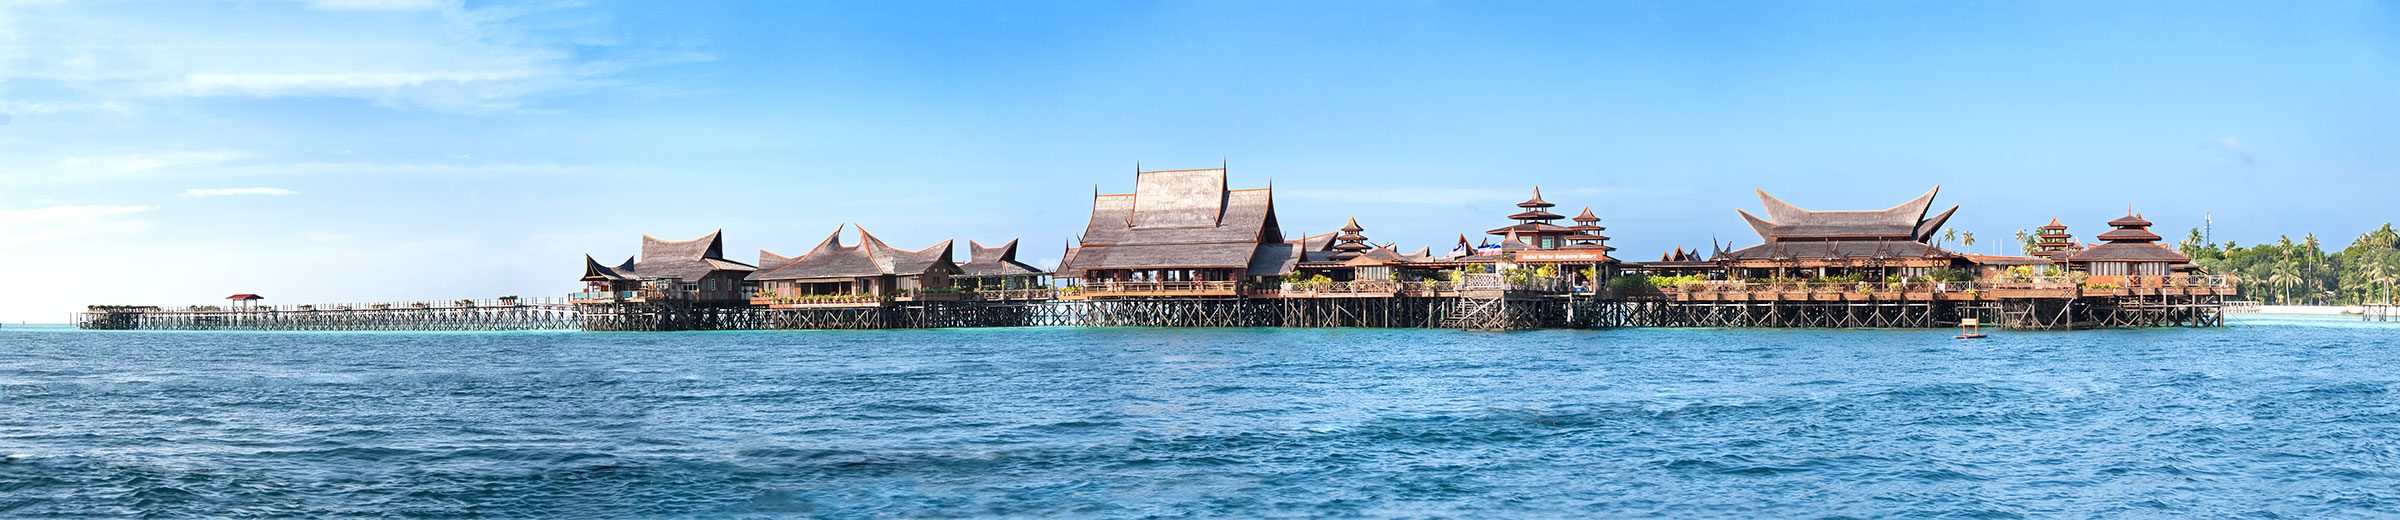 View of Mabul Water Bungalows